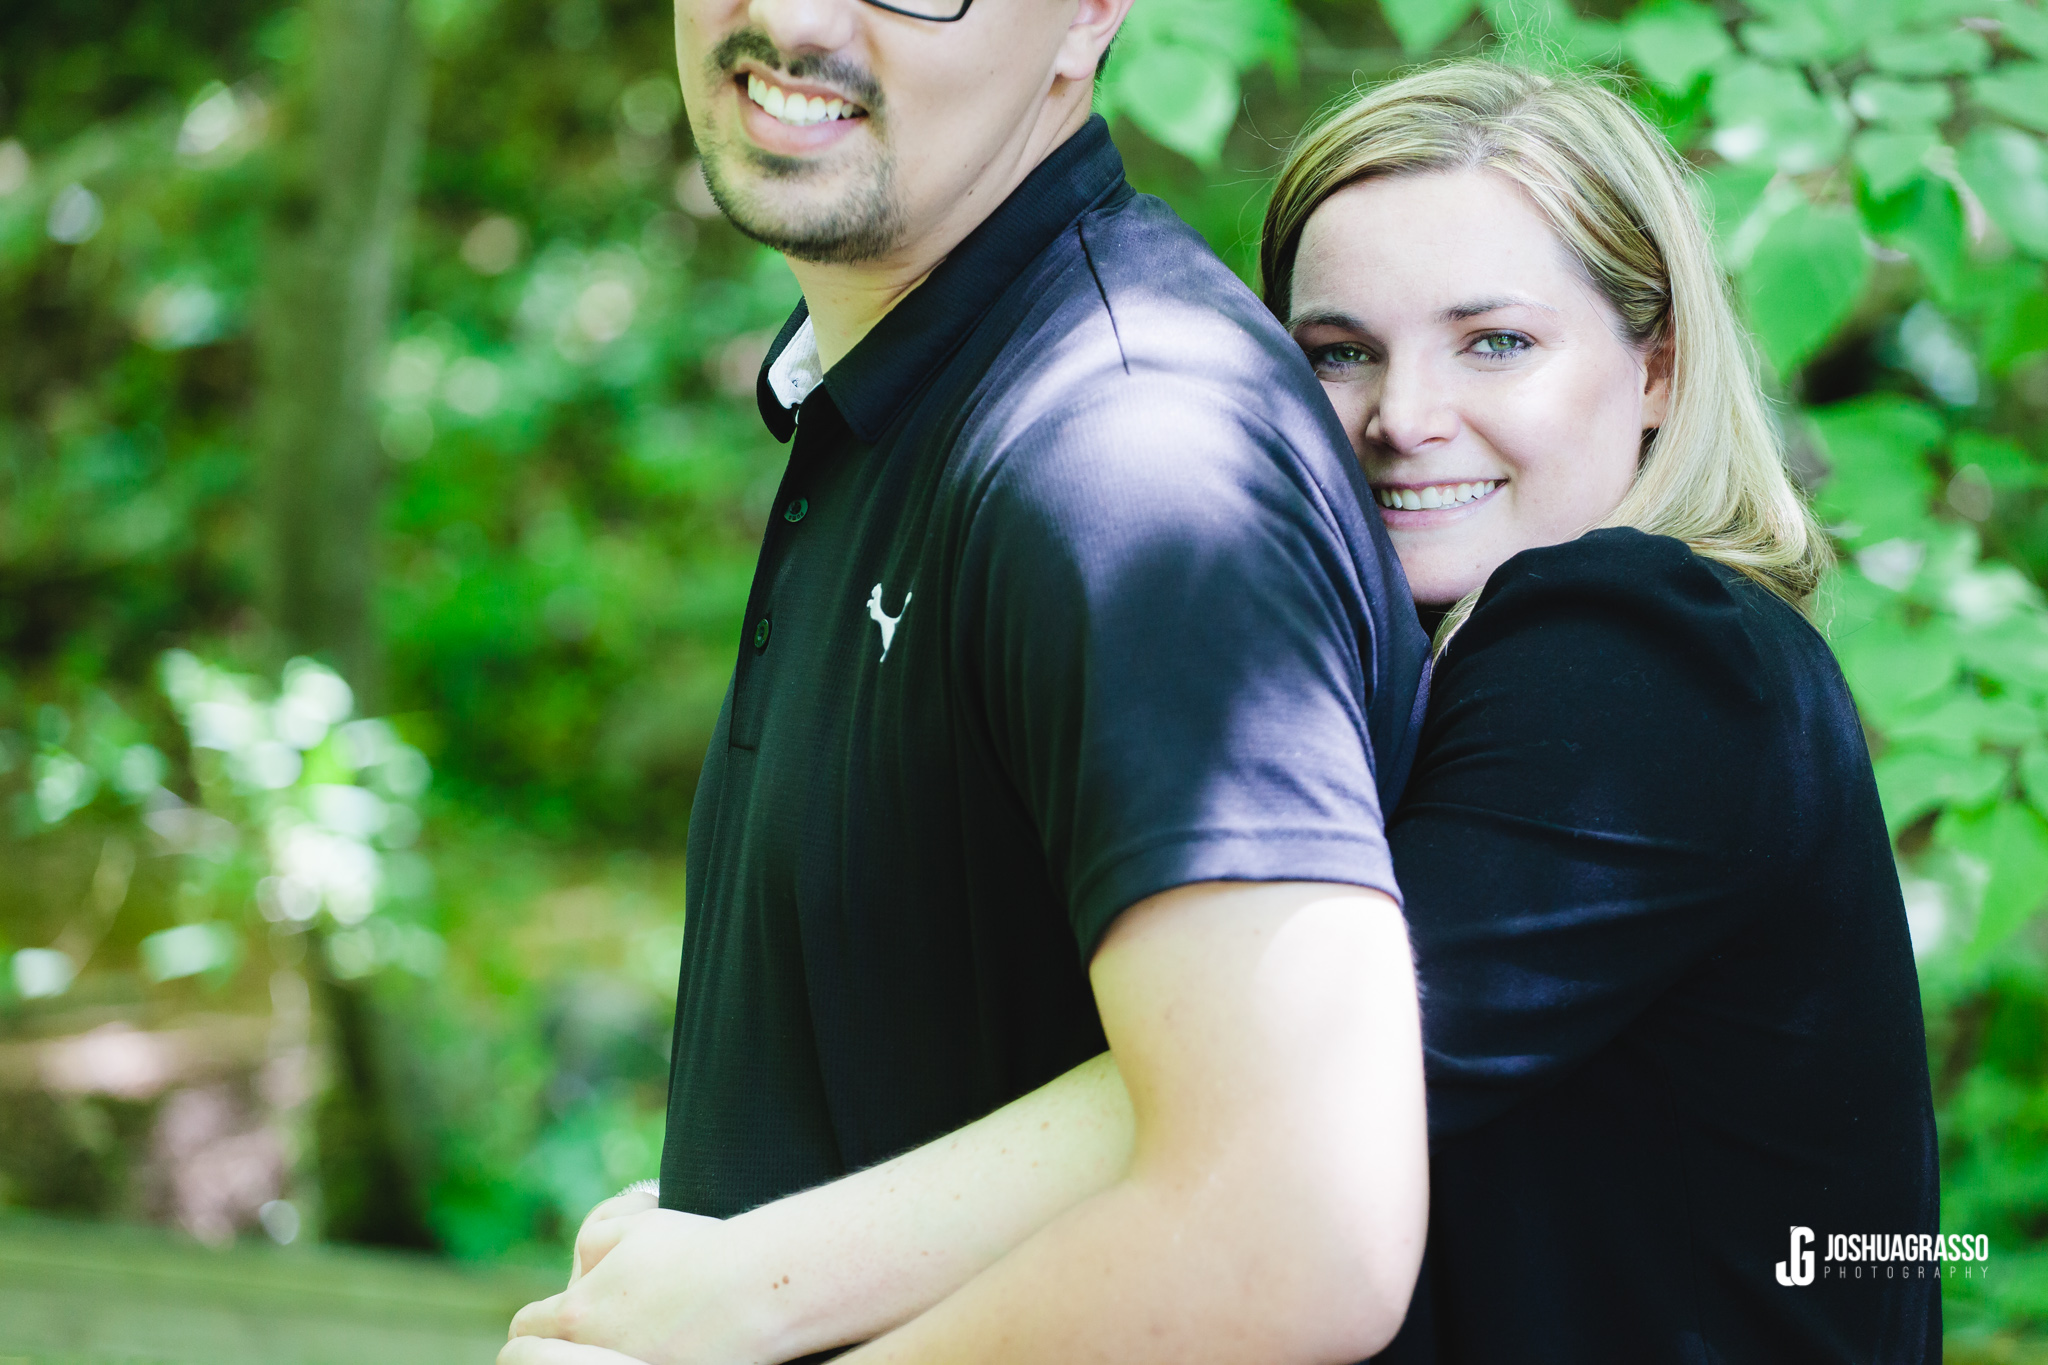 Buford-Dam-Engagement-Session (23 of 27)